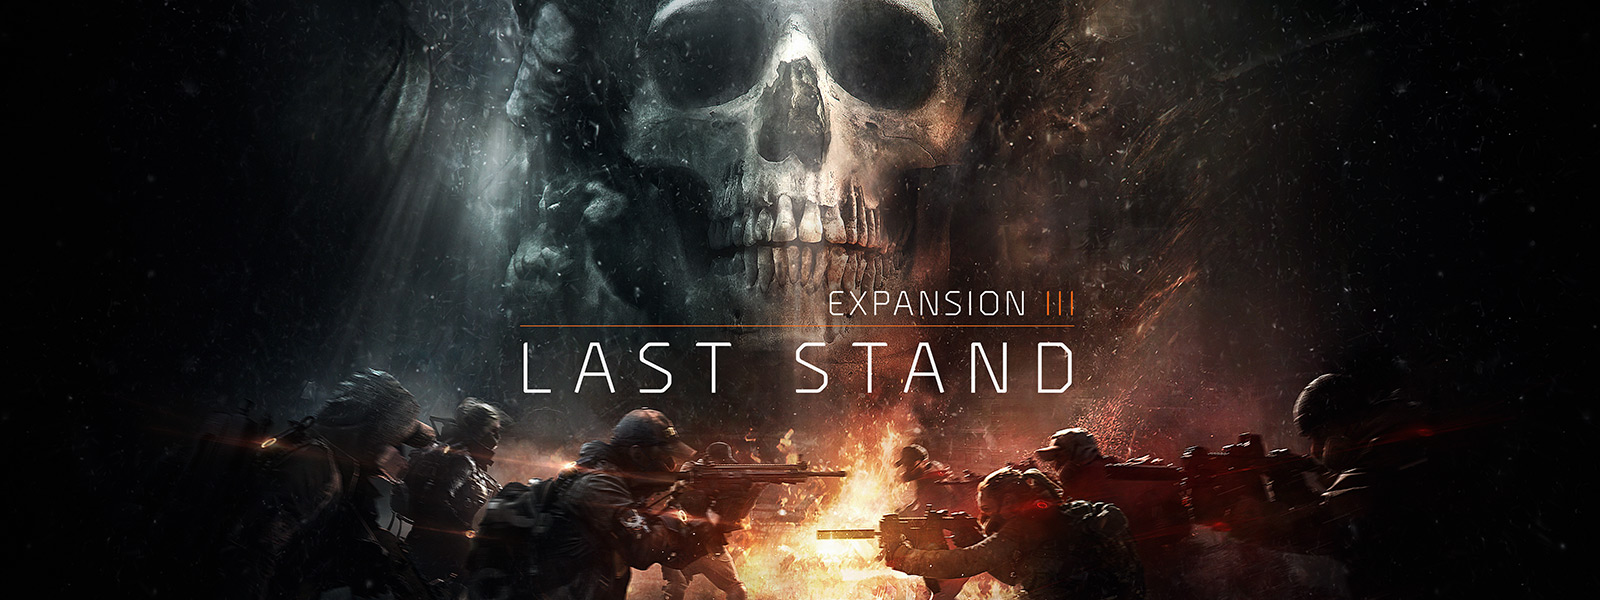 Expansion 3: Last Stand